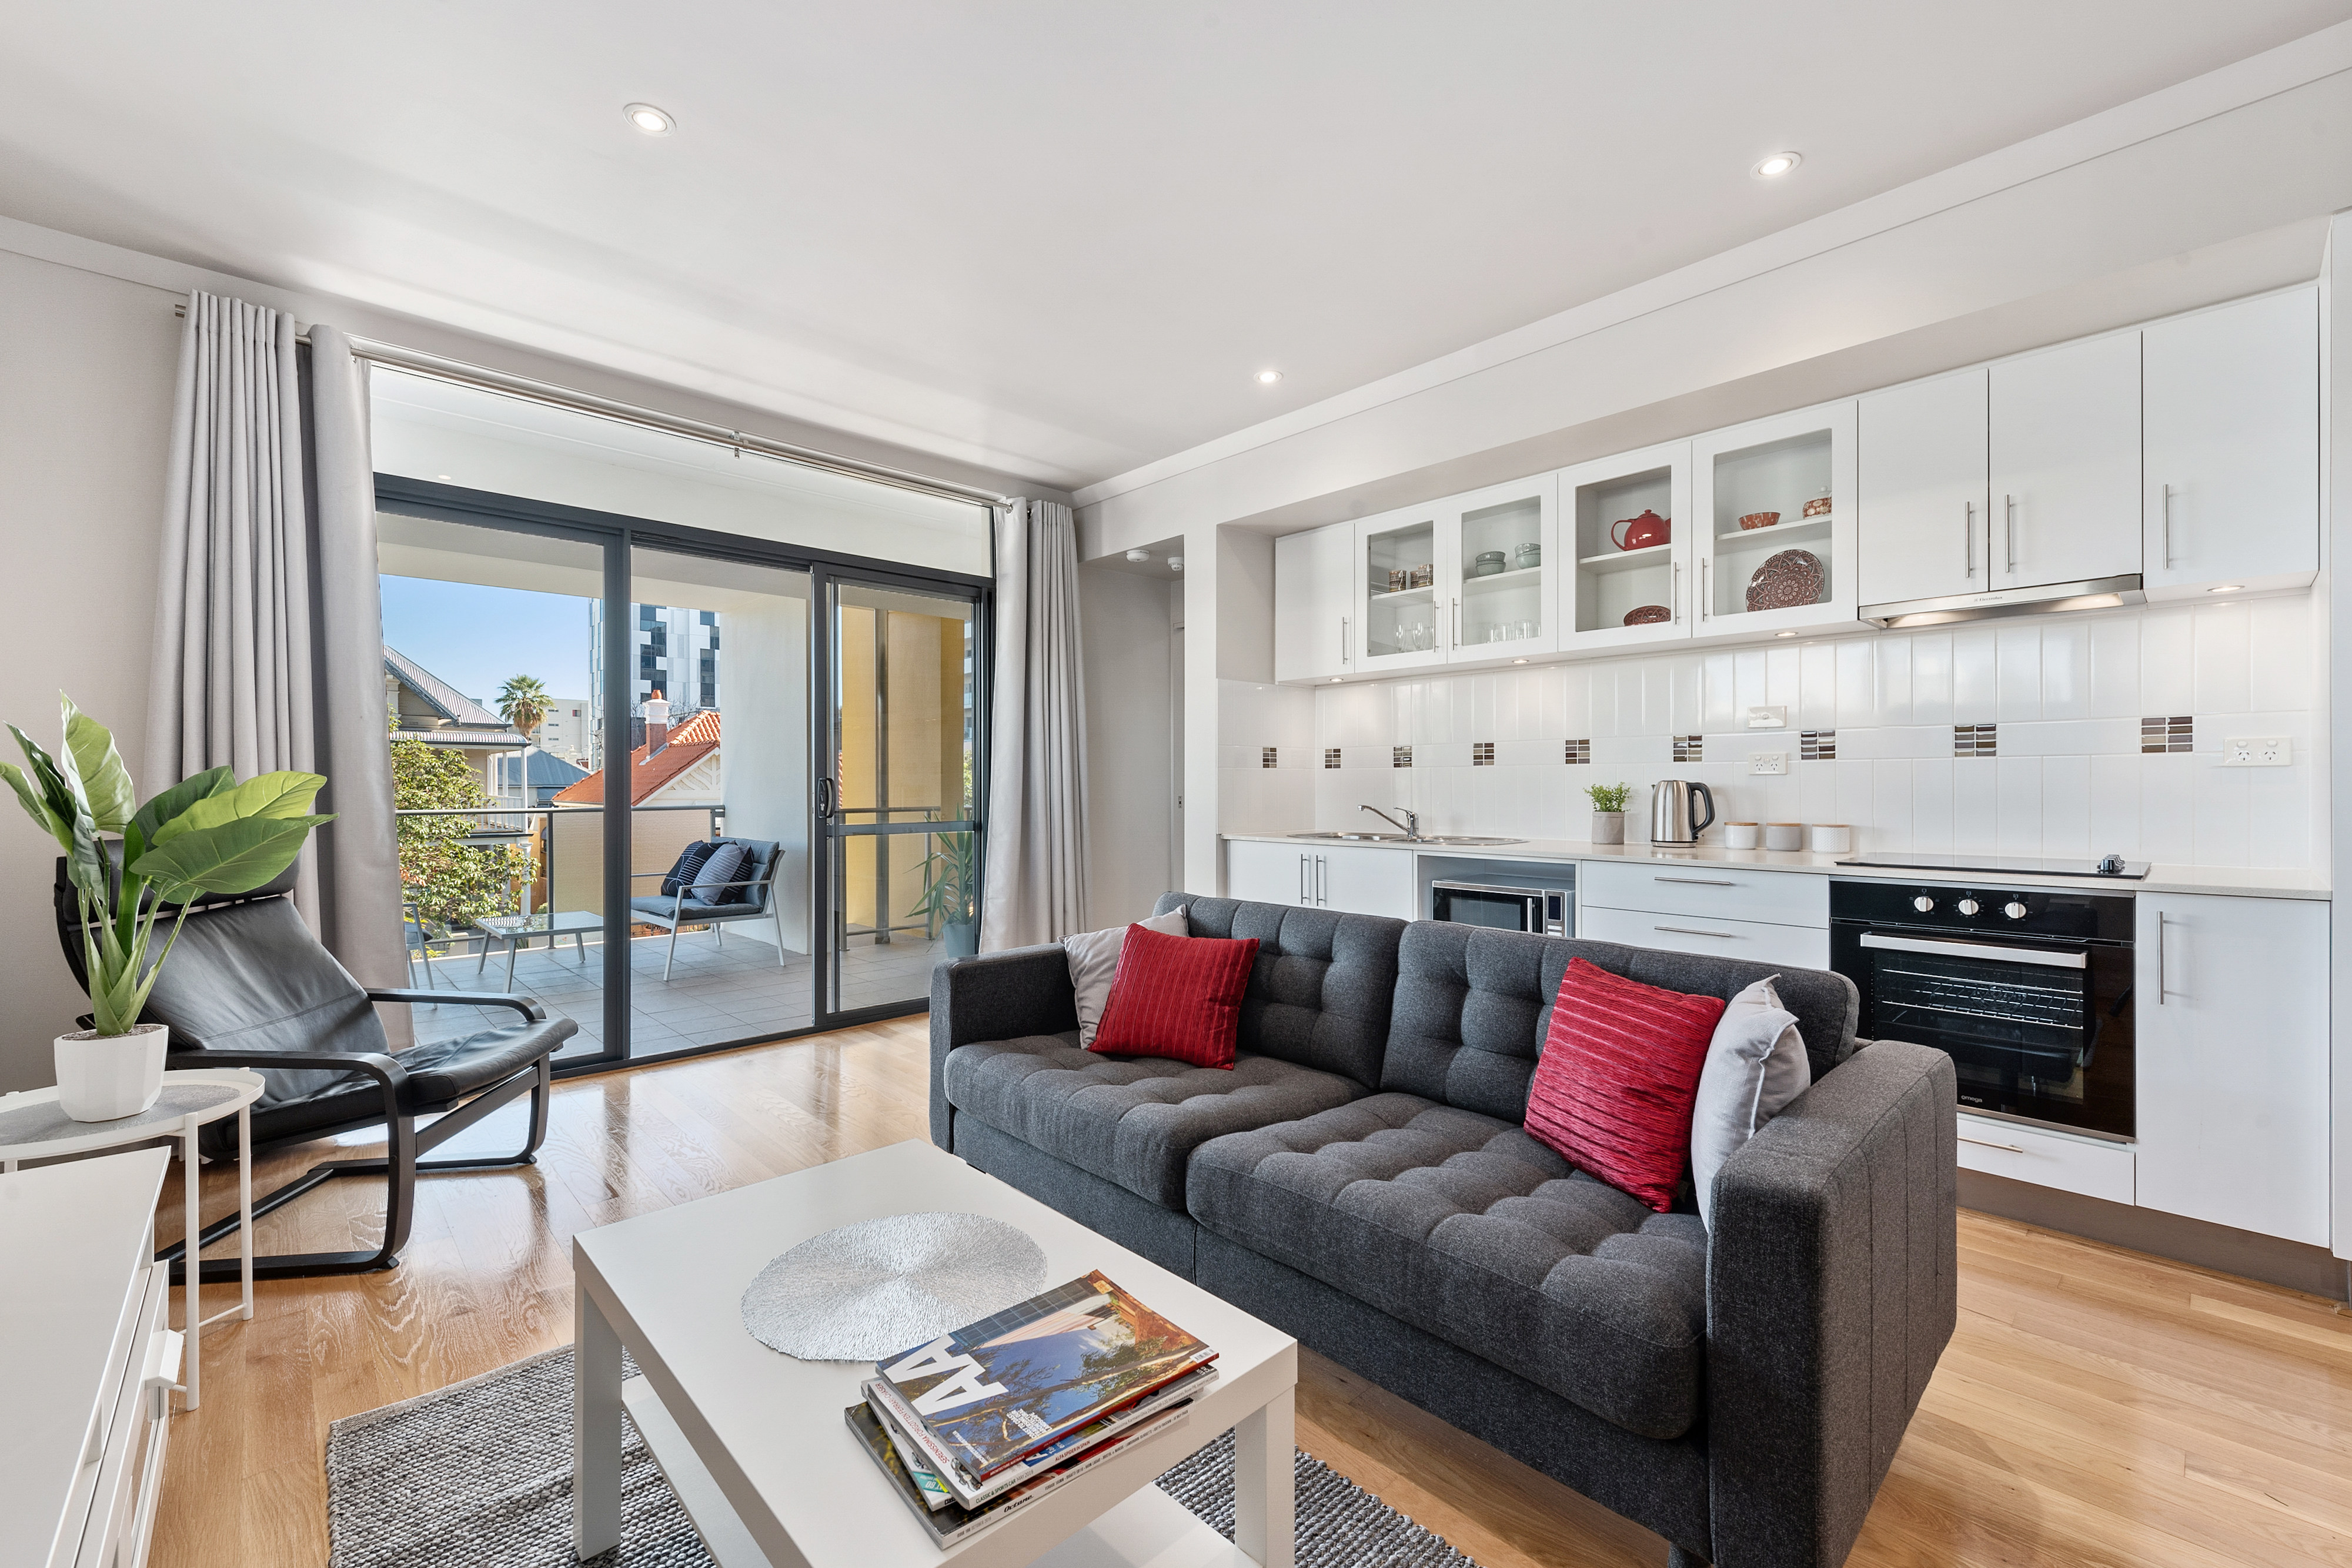 PRINT 202 48 Outram St, West Perth 10